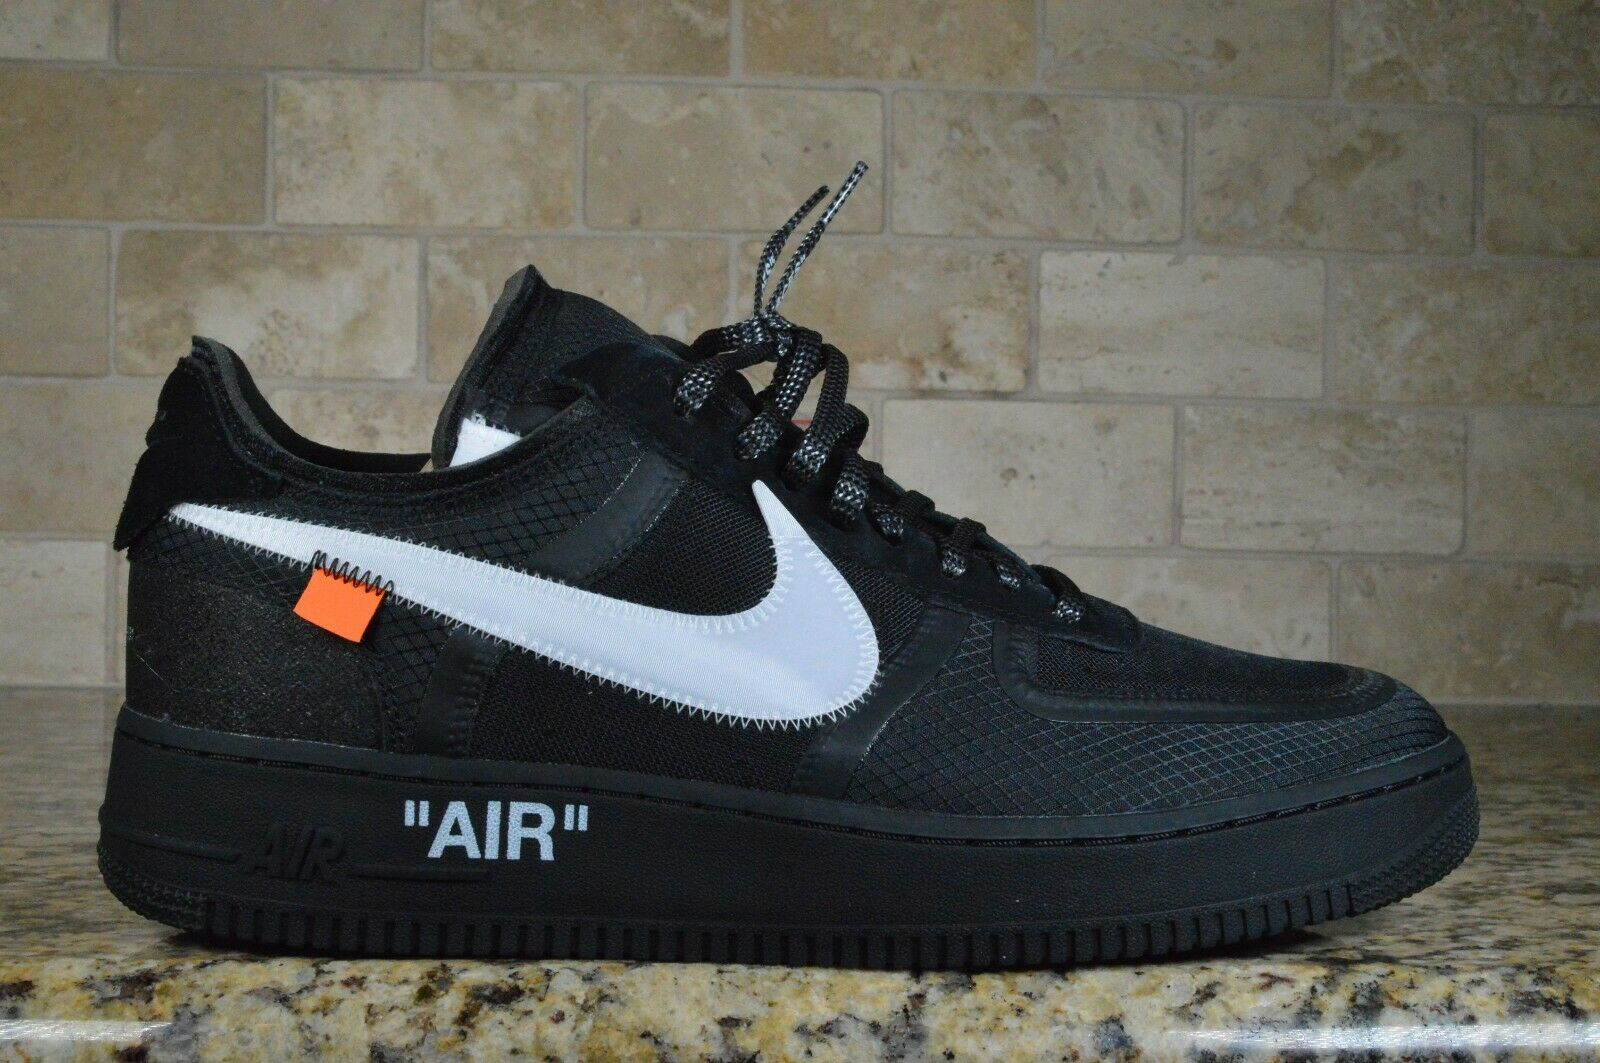 Nike Air Force 1 Low Off White Black White